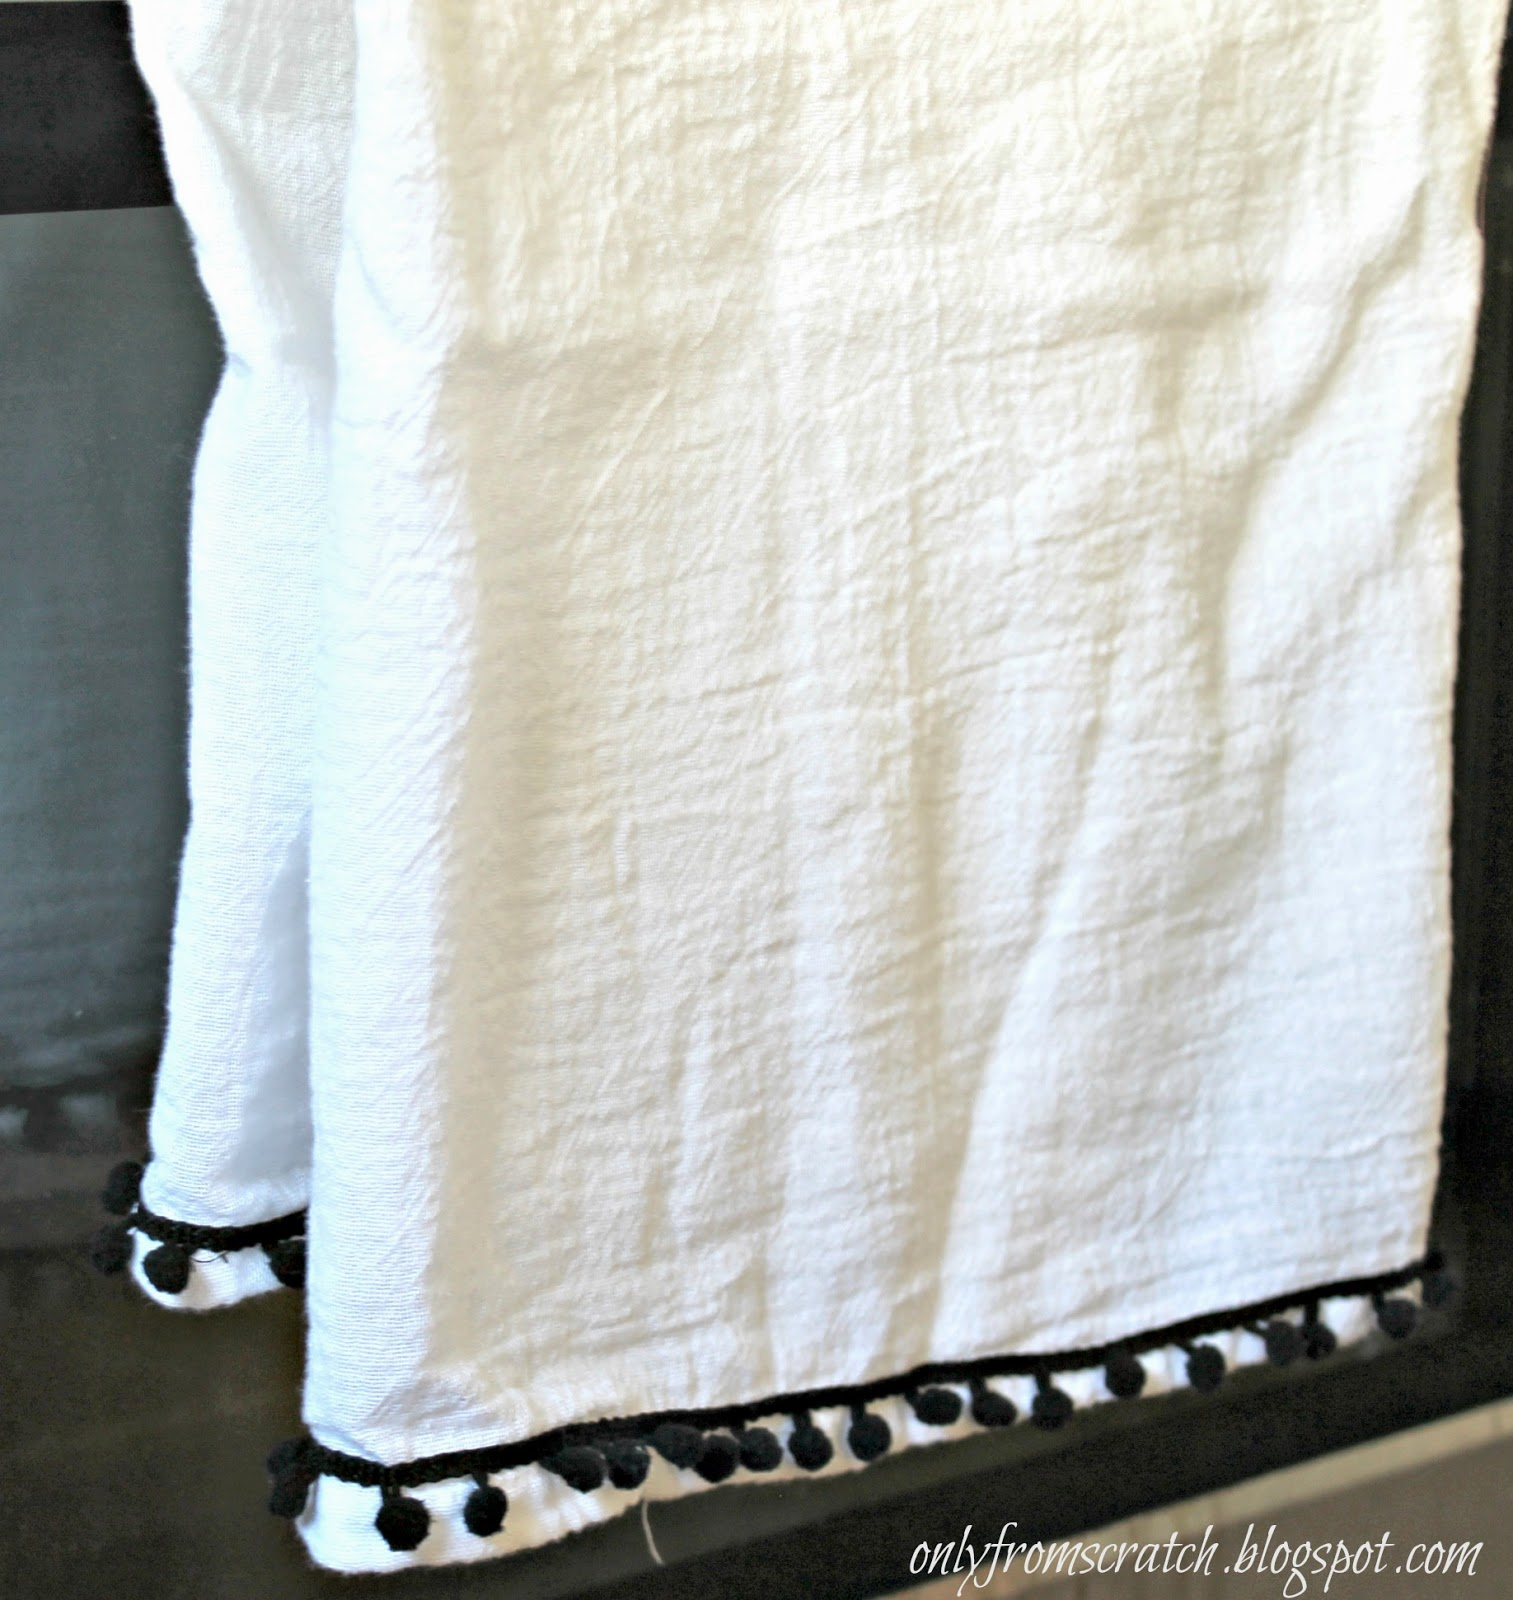 Only From Scratch: DIY Embellished Flour Sack Towels